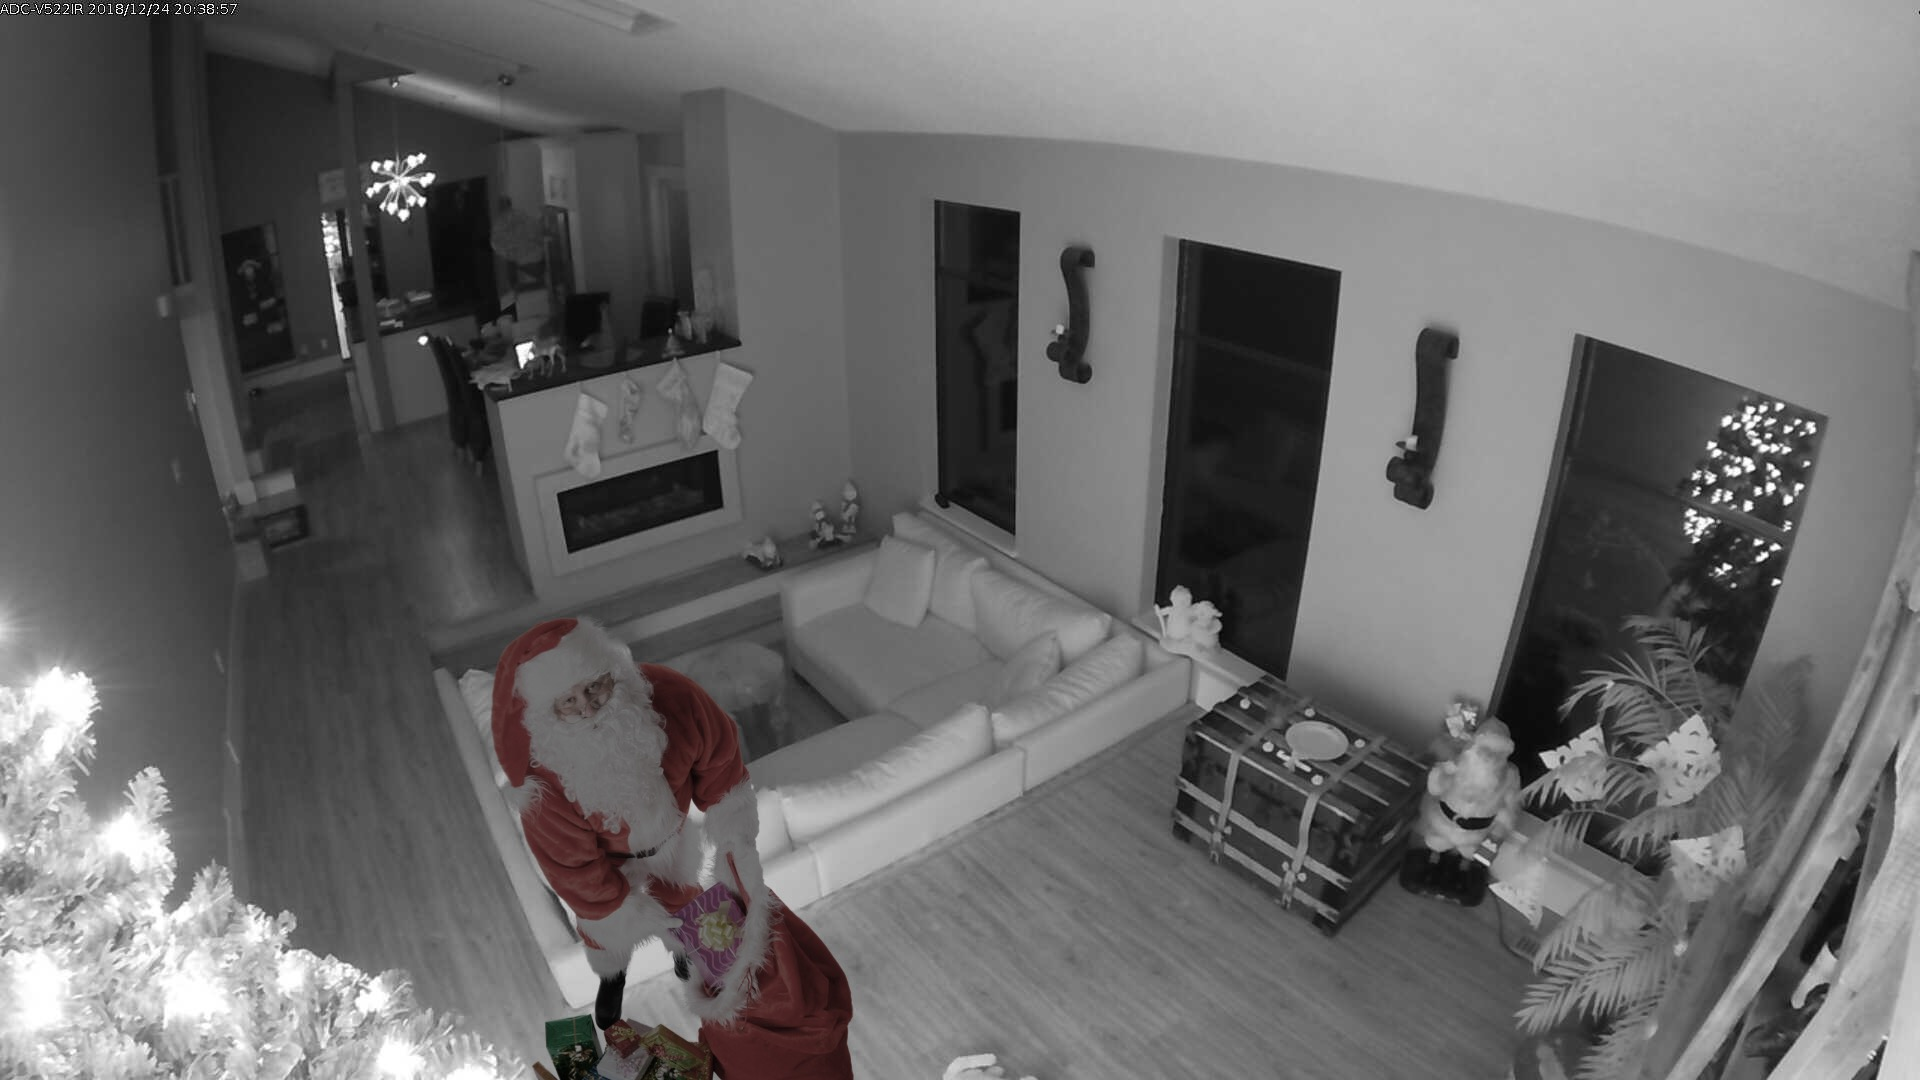 Home security catches Santa delivering gifts